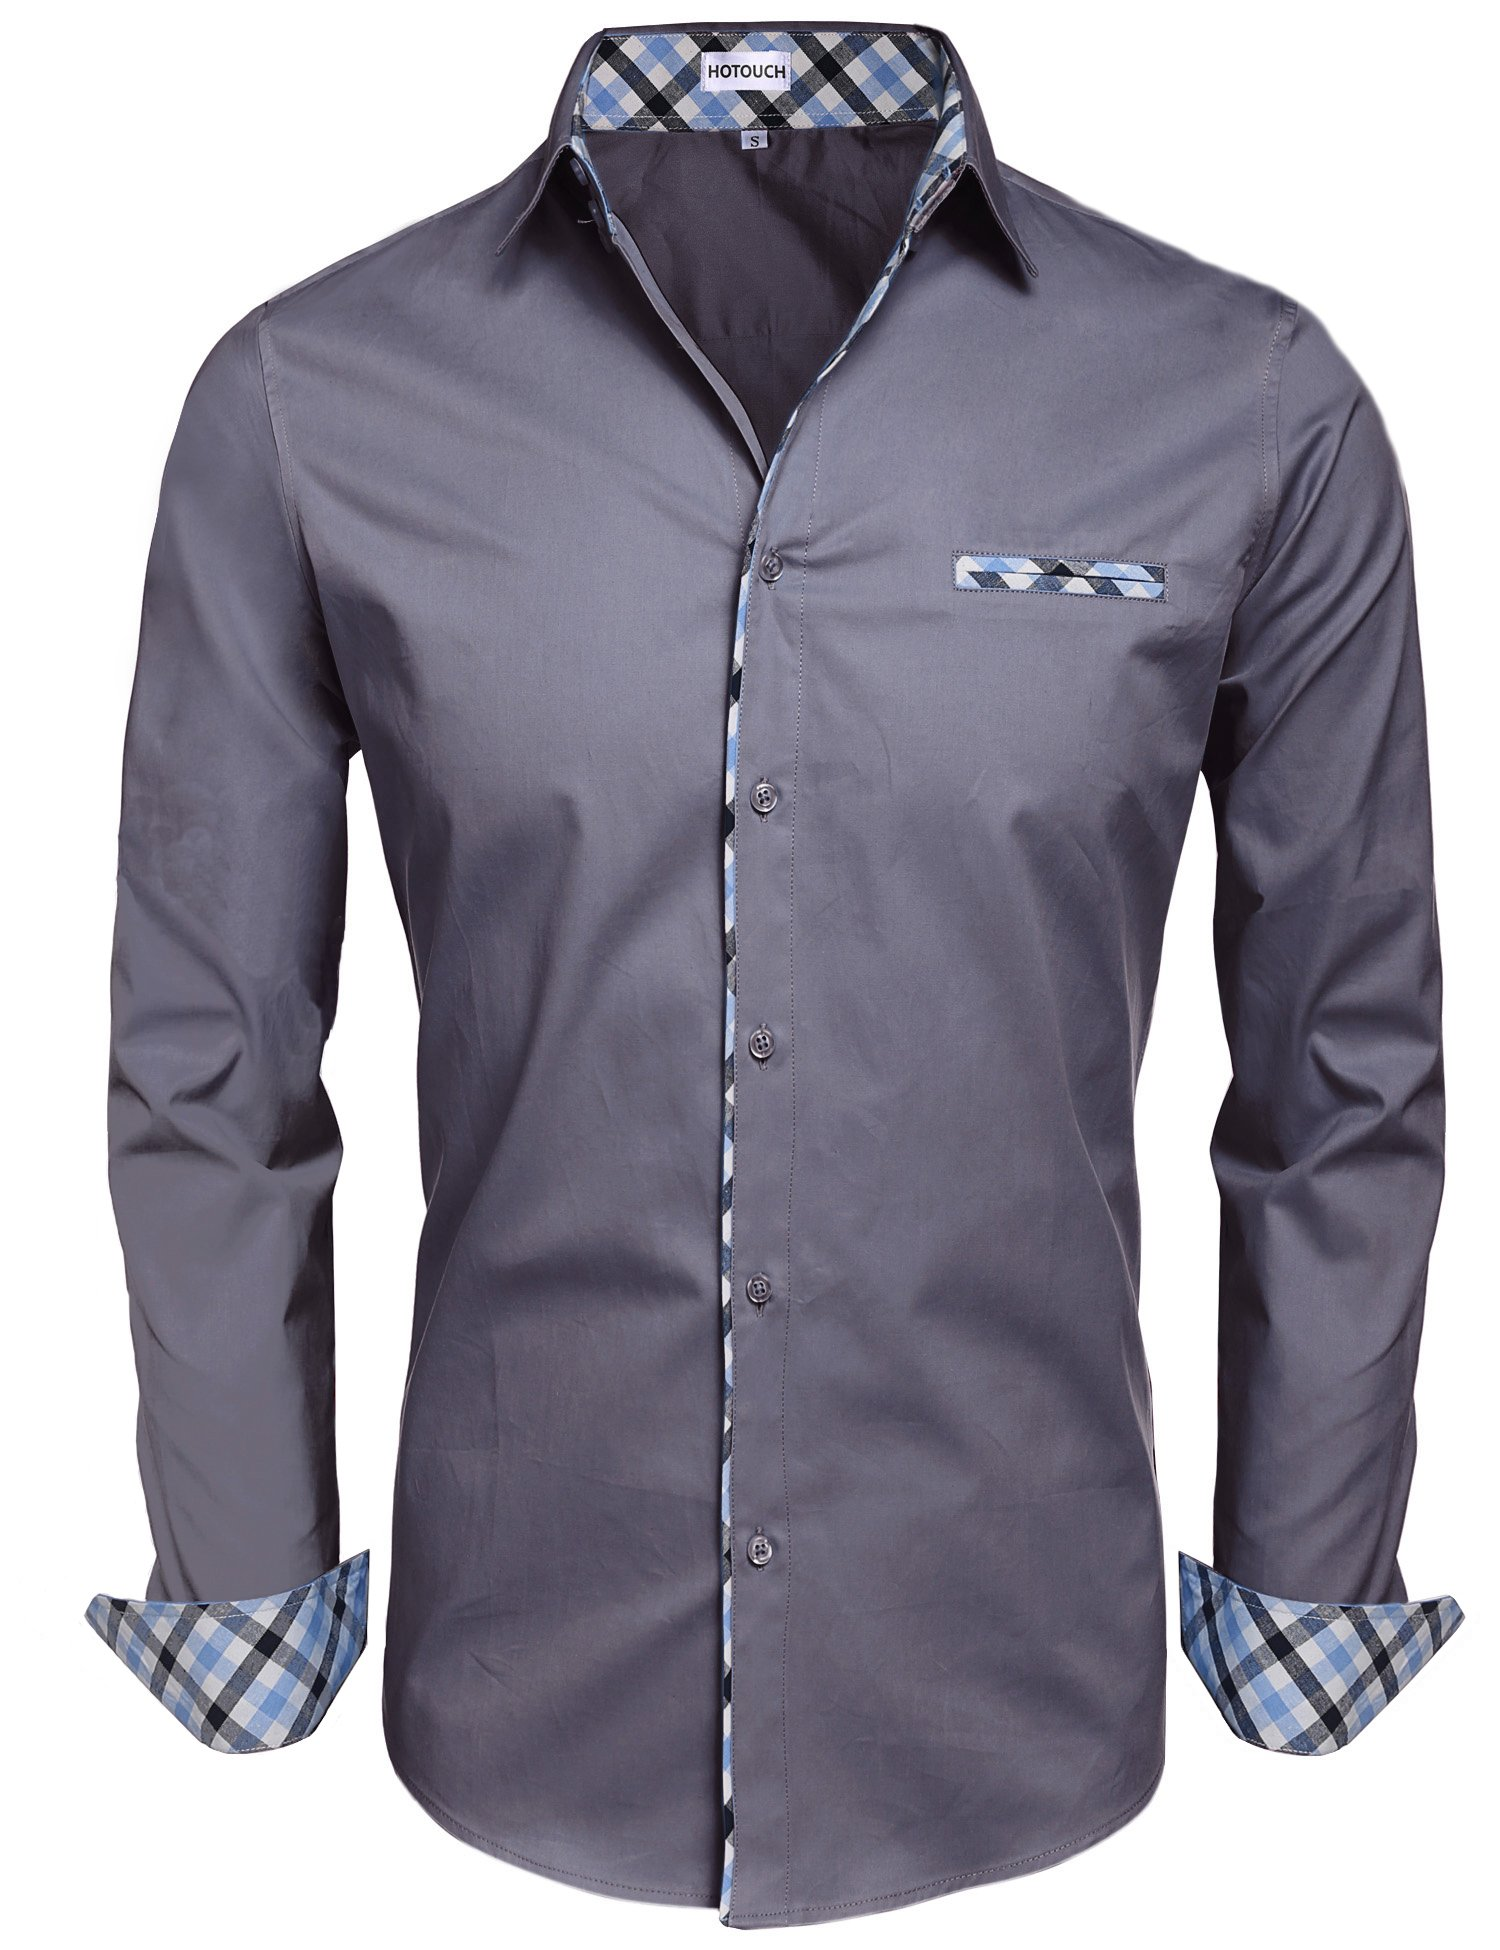 Hotouch Men Contrast Business Dress Shirts with Fake Pocket Dark Grey L